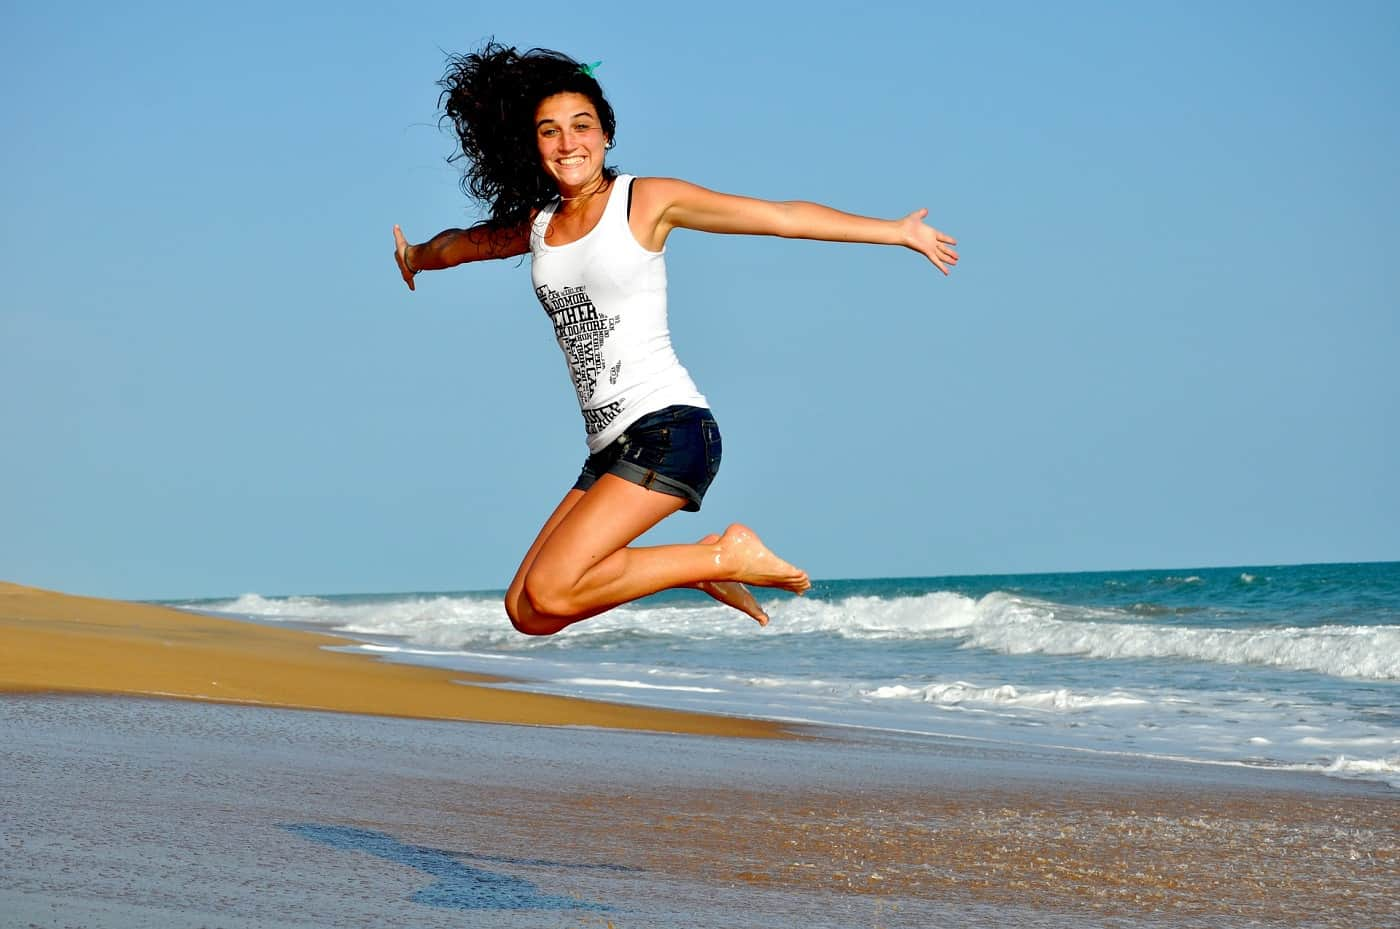 Woman jumping high on beach